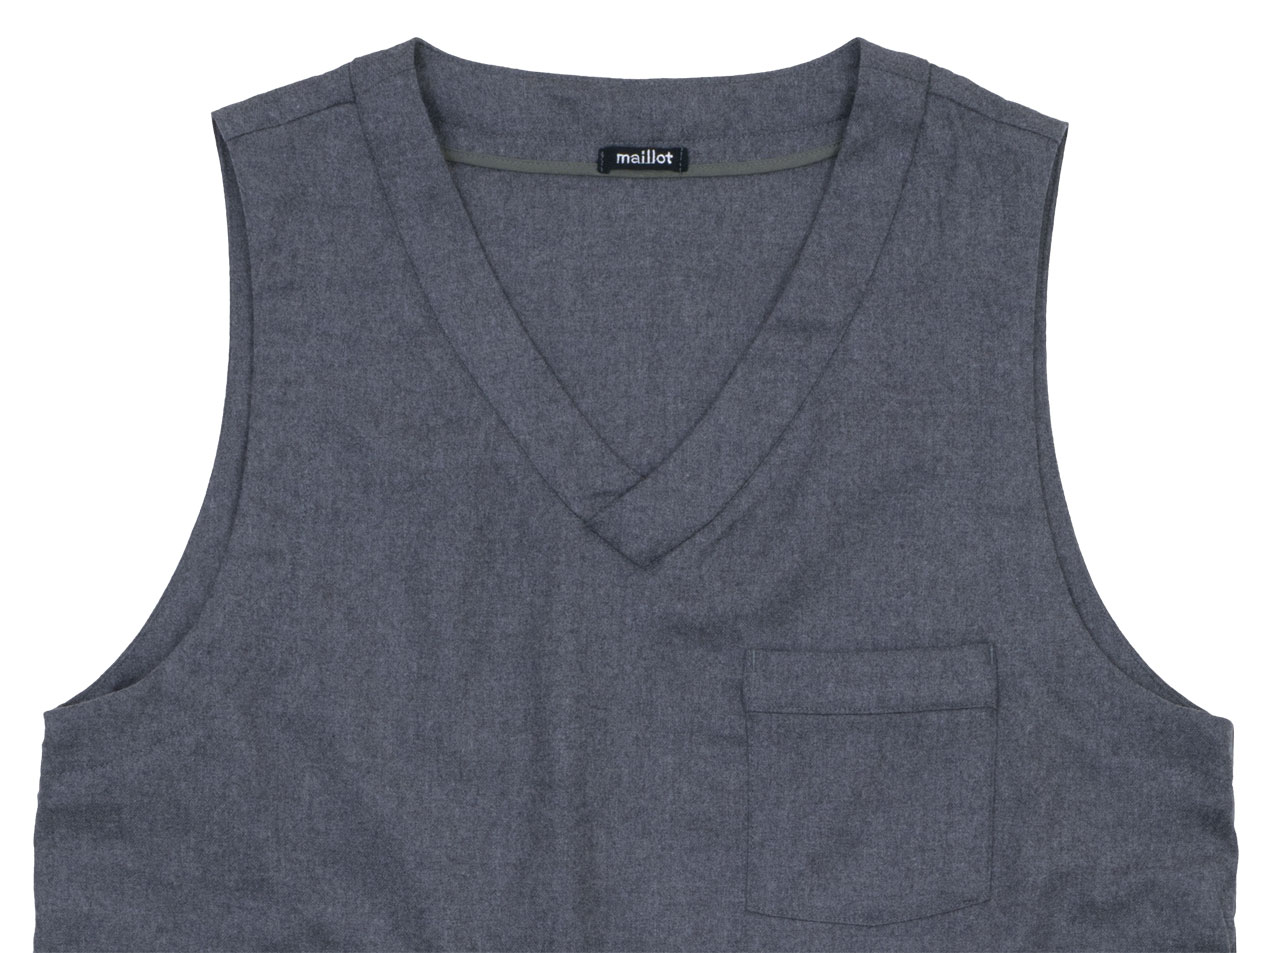 maillot mature wool labo vest